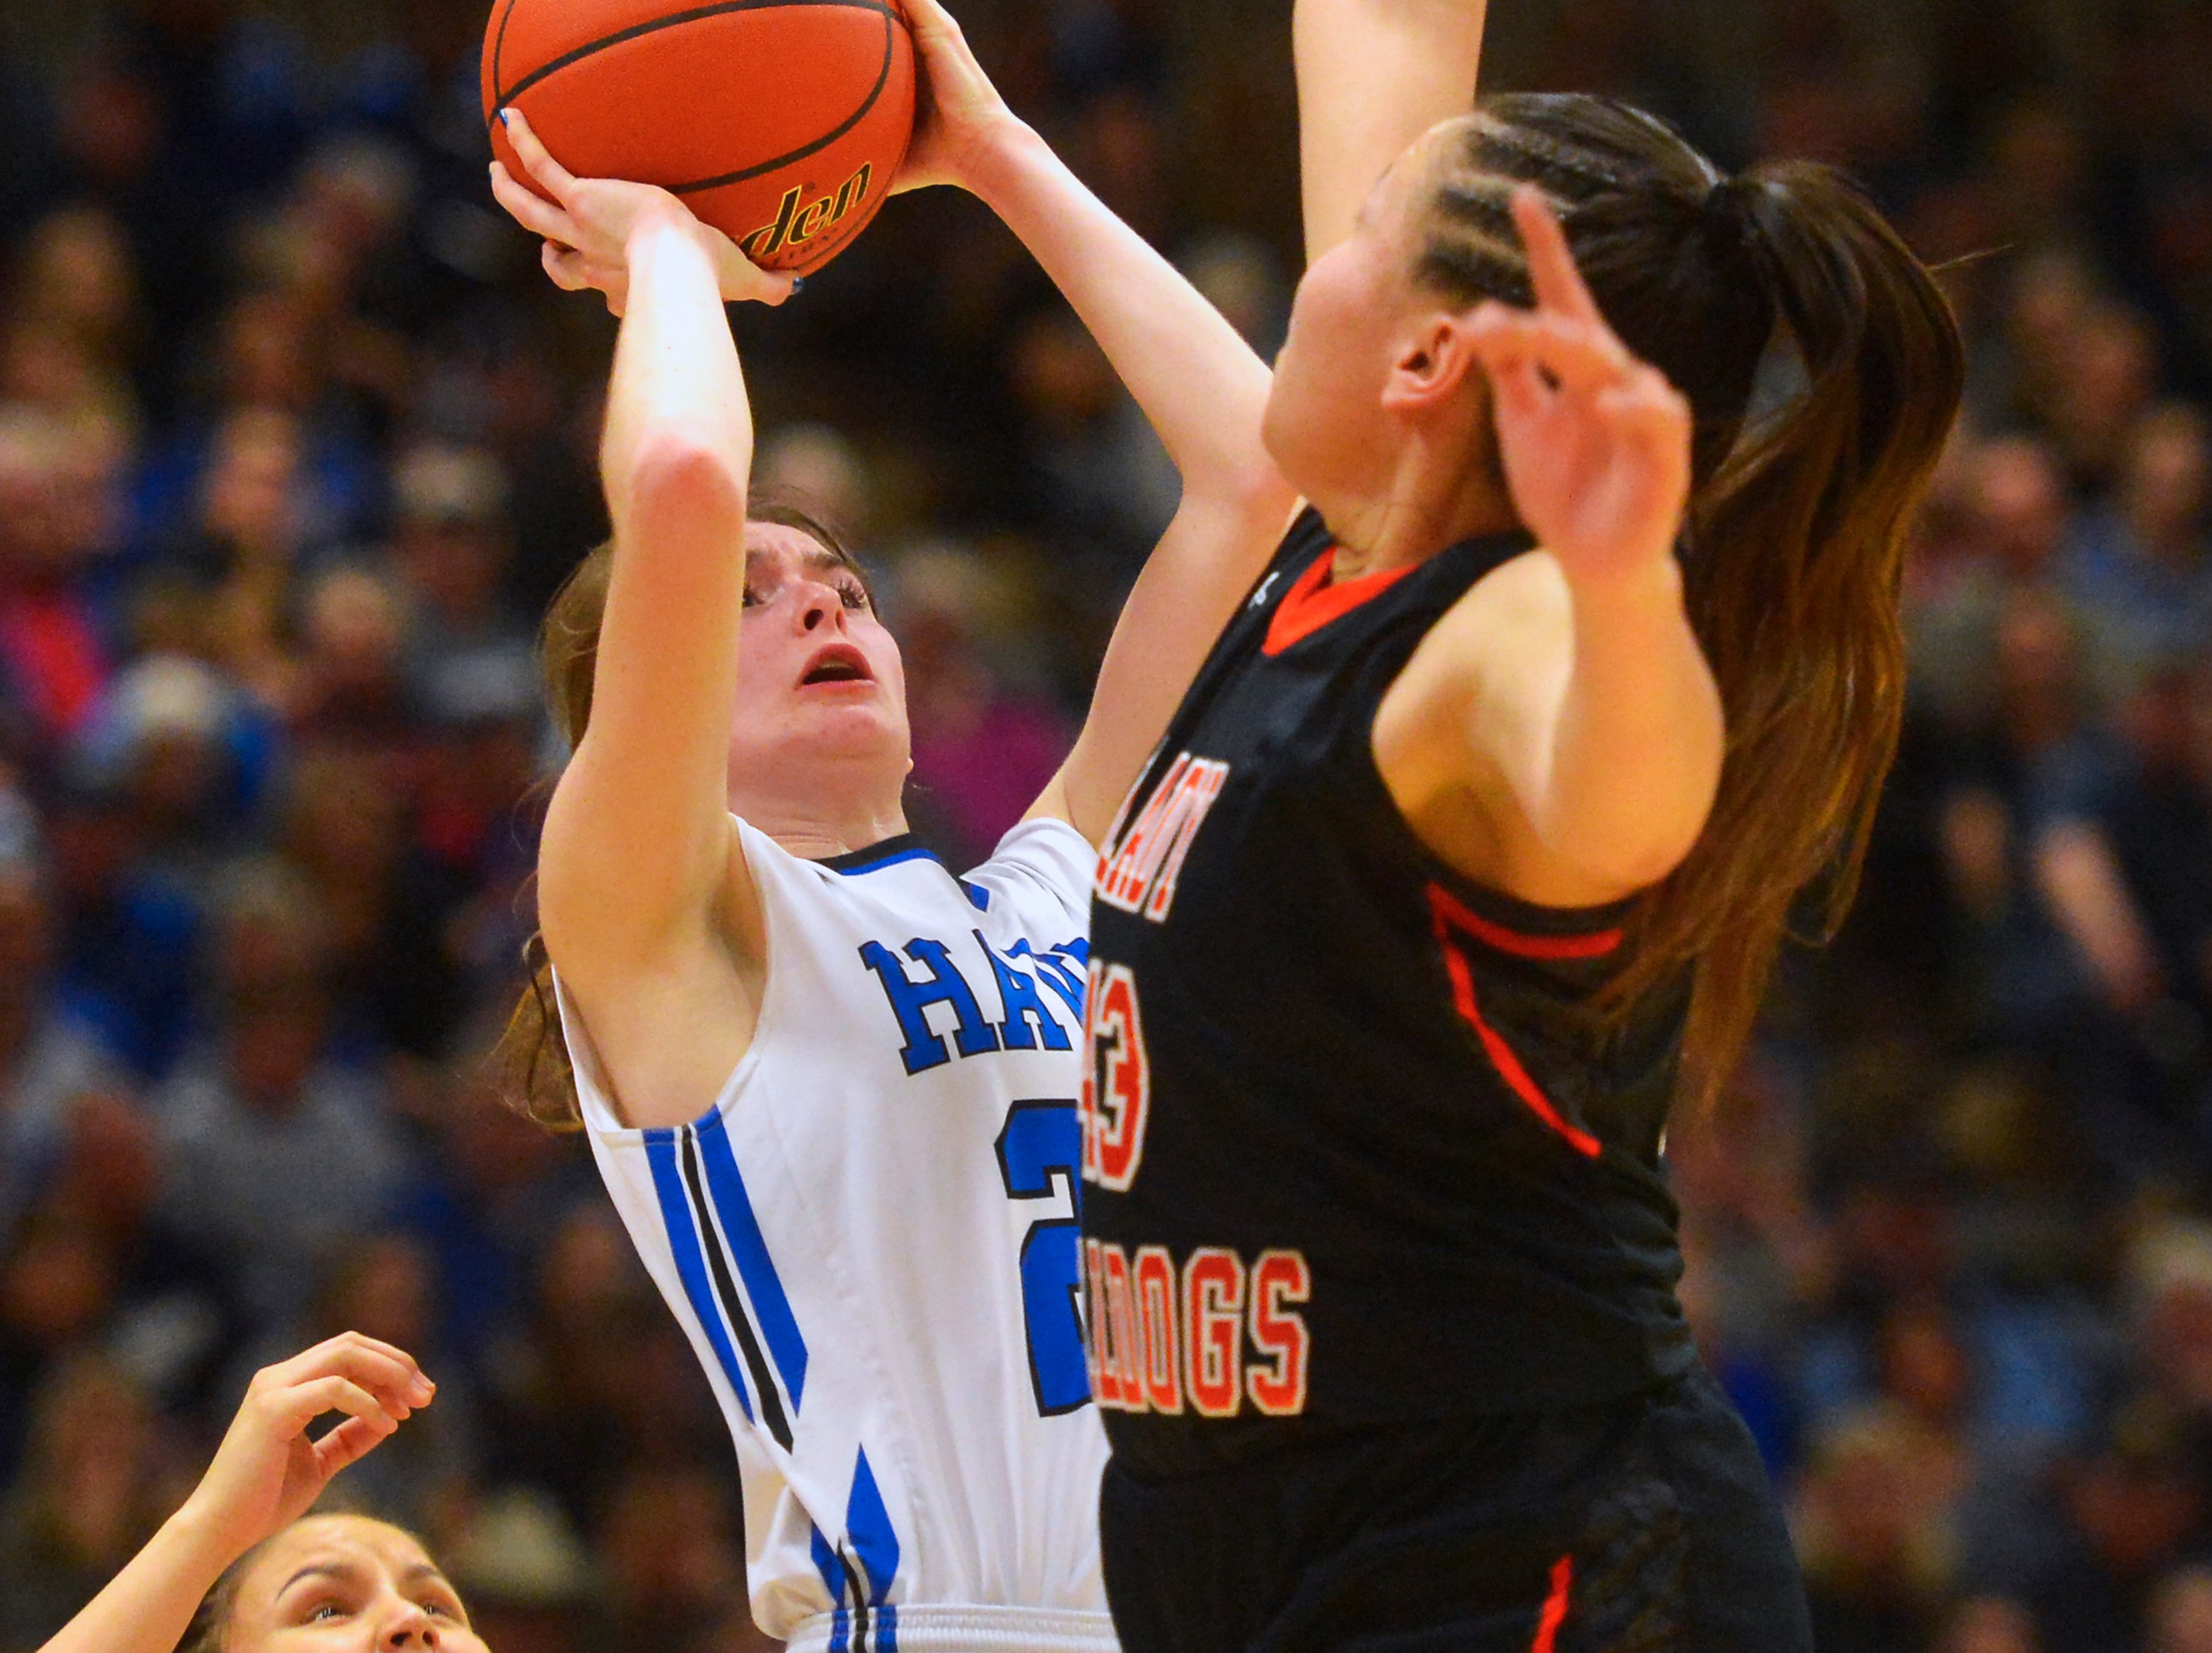 Havre's Katie Wirtzberger attempts a shot as Hardin's Marie Five defends in the championship game of the State Class A Basketball Tournament in the Four Seasons Arena, Saturday.